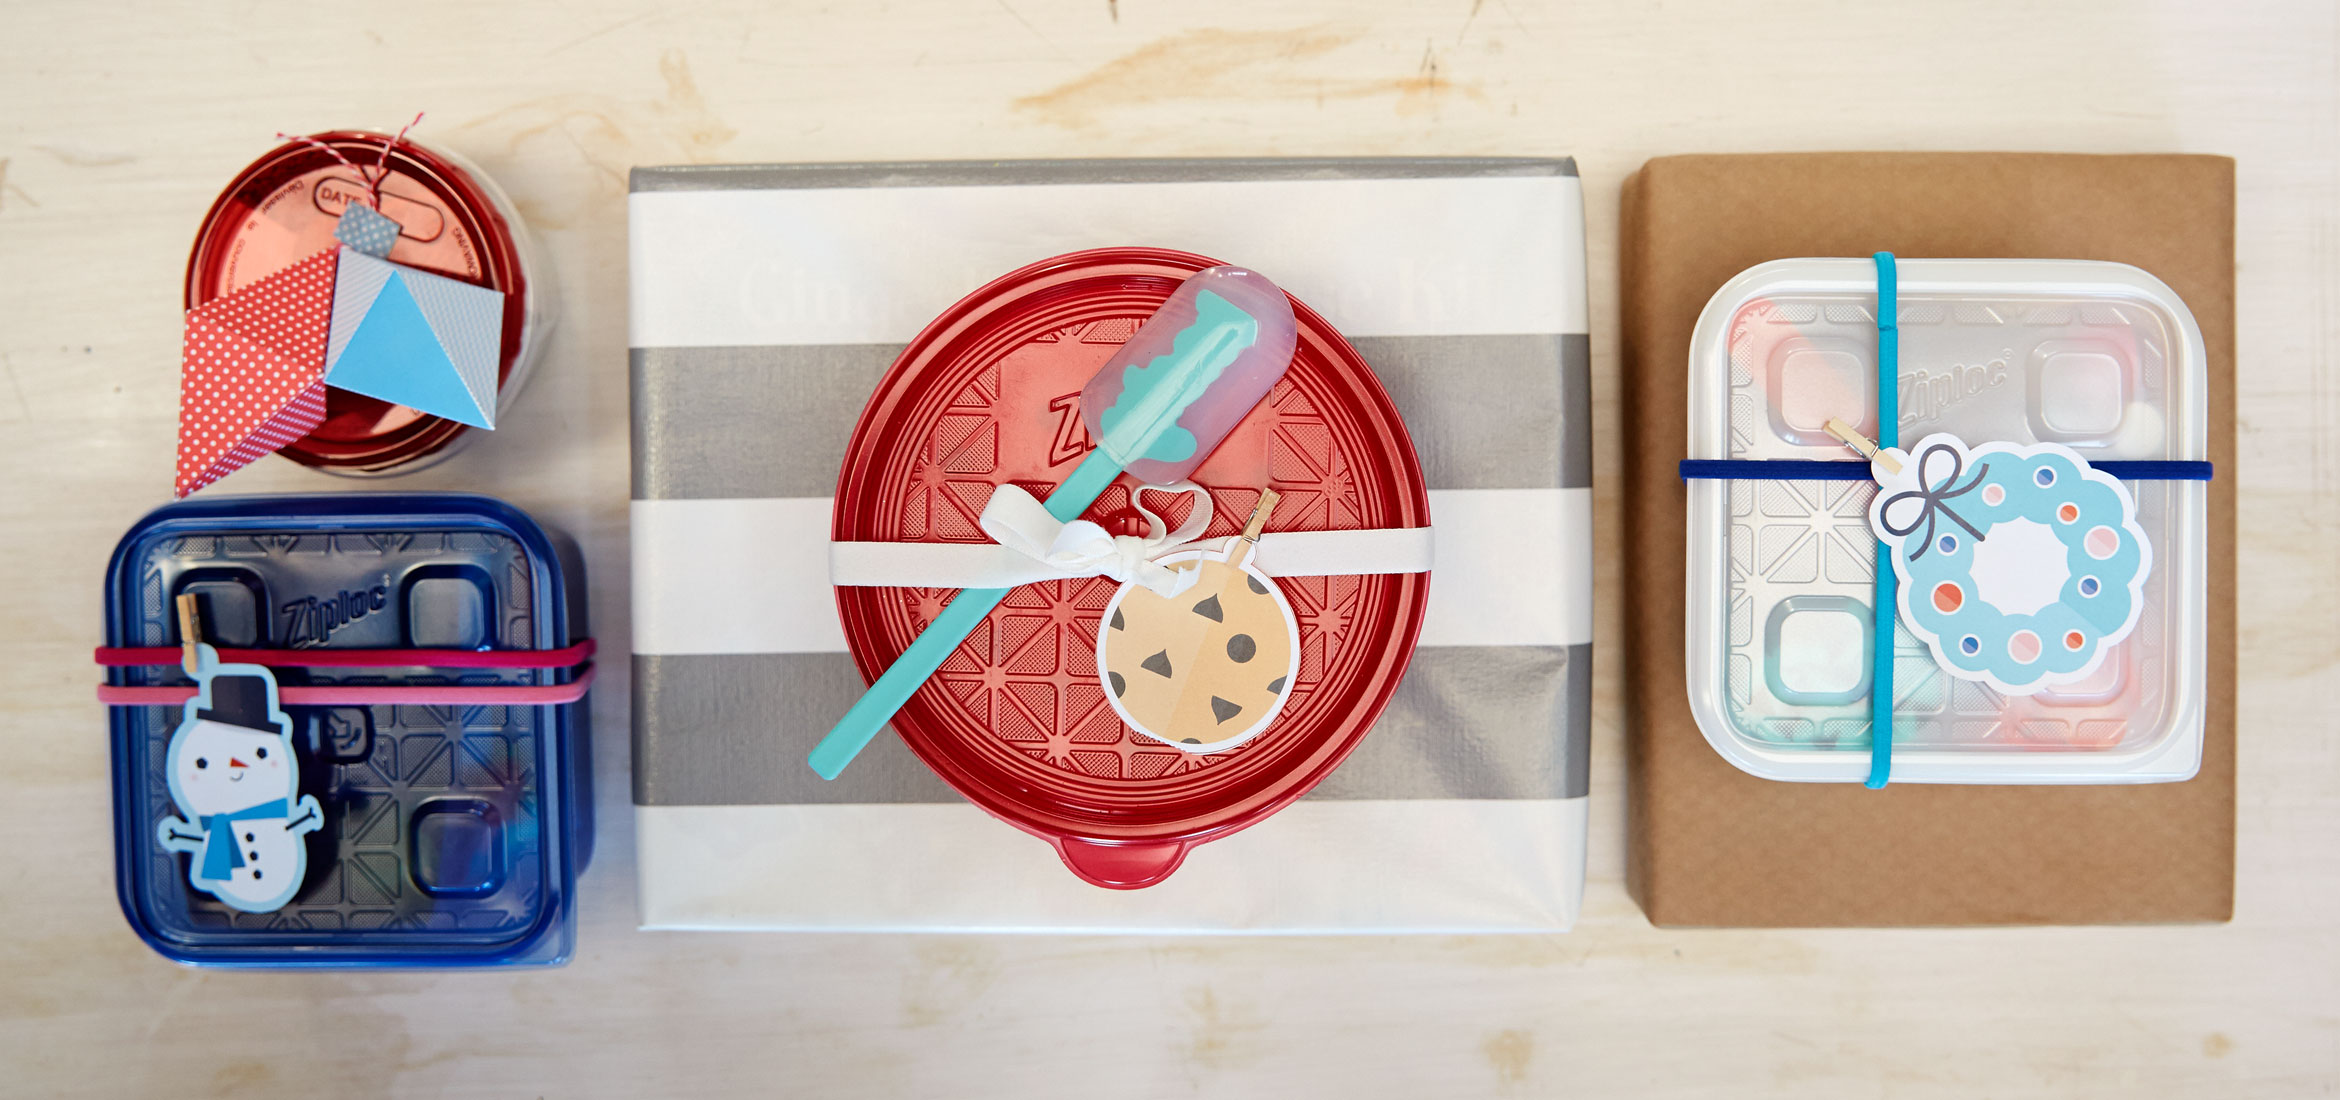 The-Perfect-Gift-In-A-Snap-Literally-Ziploc-Brand